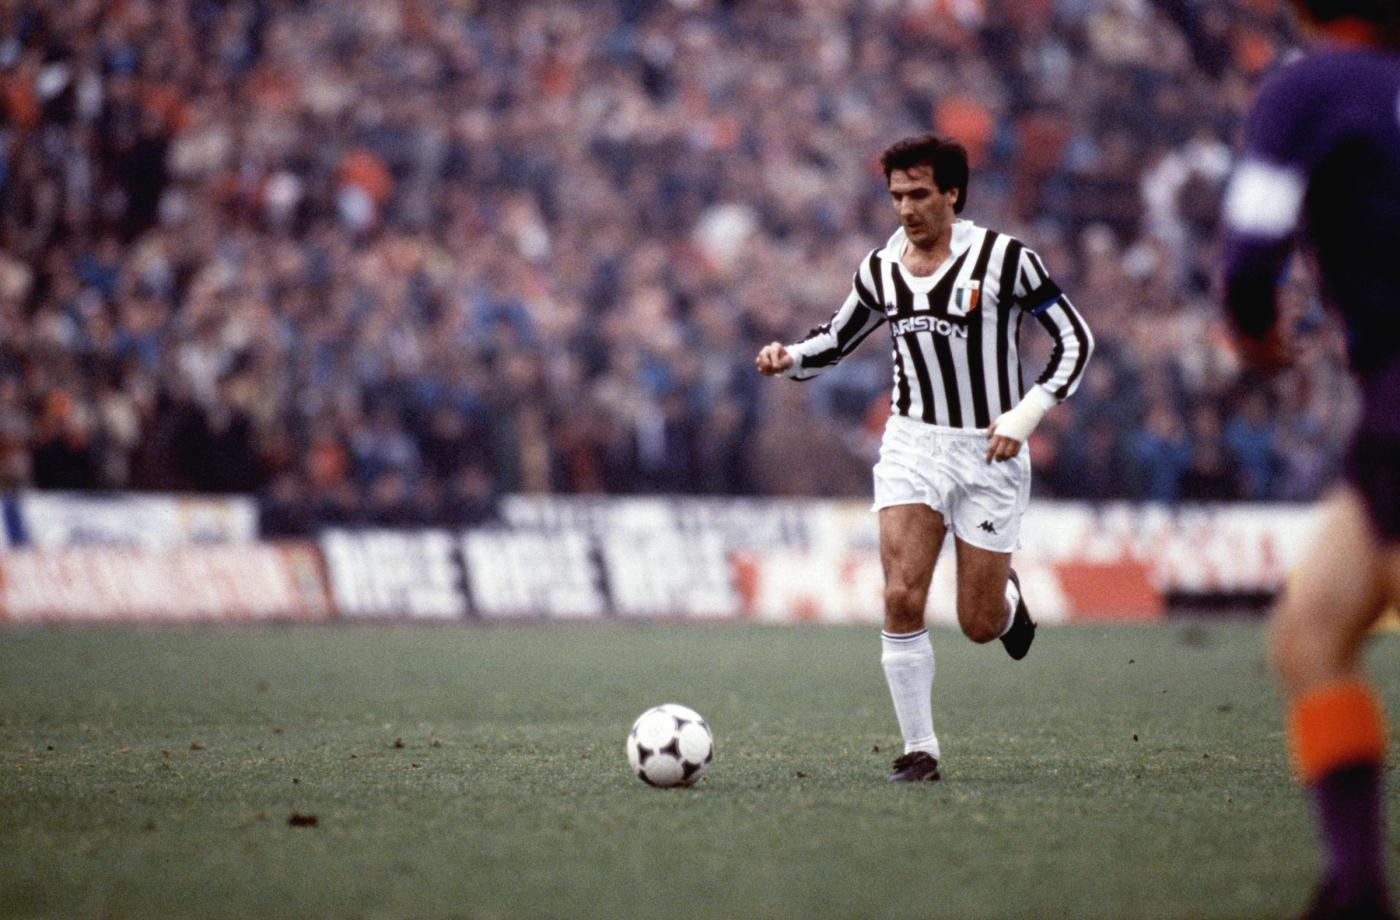 Foto Juventus/LaPresseanni '80Archivio StoricoSport CalcioGaetano ScireaNella foto: Gaetano ScireaPhoto Juventus/LaPresse80'sHistorical ArchiveSport SoccerGaetano ScireaIn the photo: Gaetano Scirea